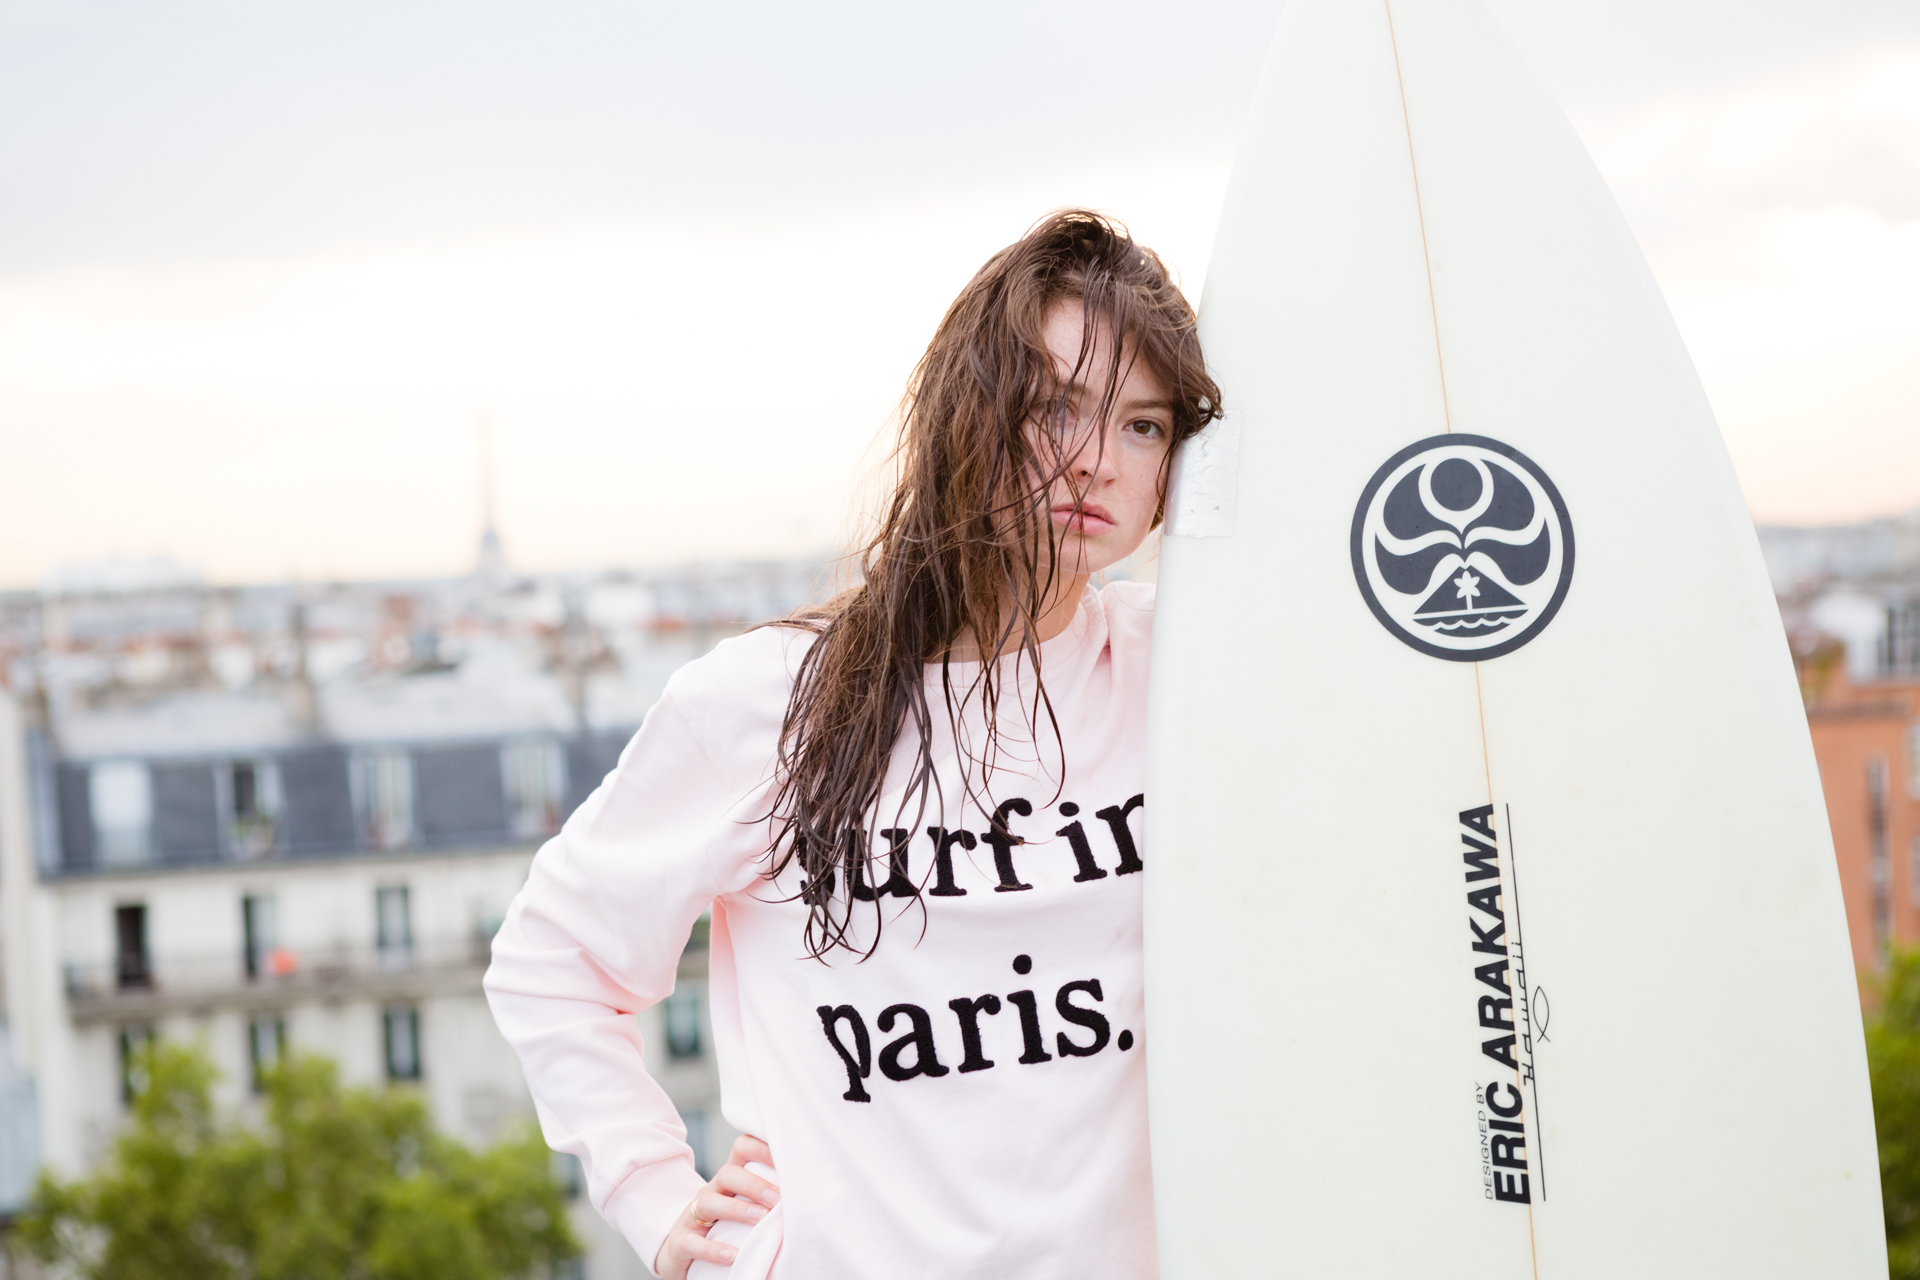 photo_samuell_collaboration_cuissedegrenouille_paris_surfinparis_A00A9018